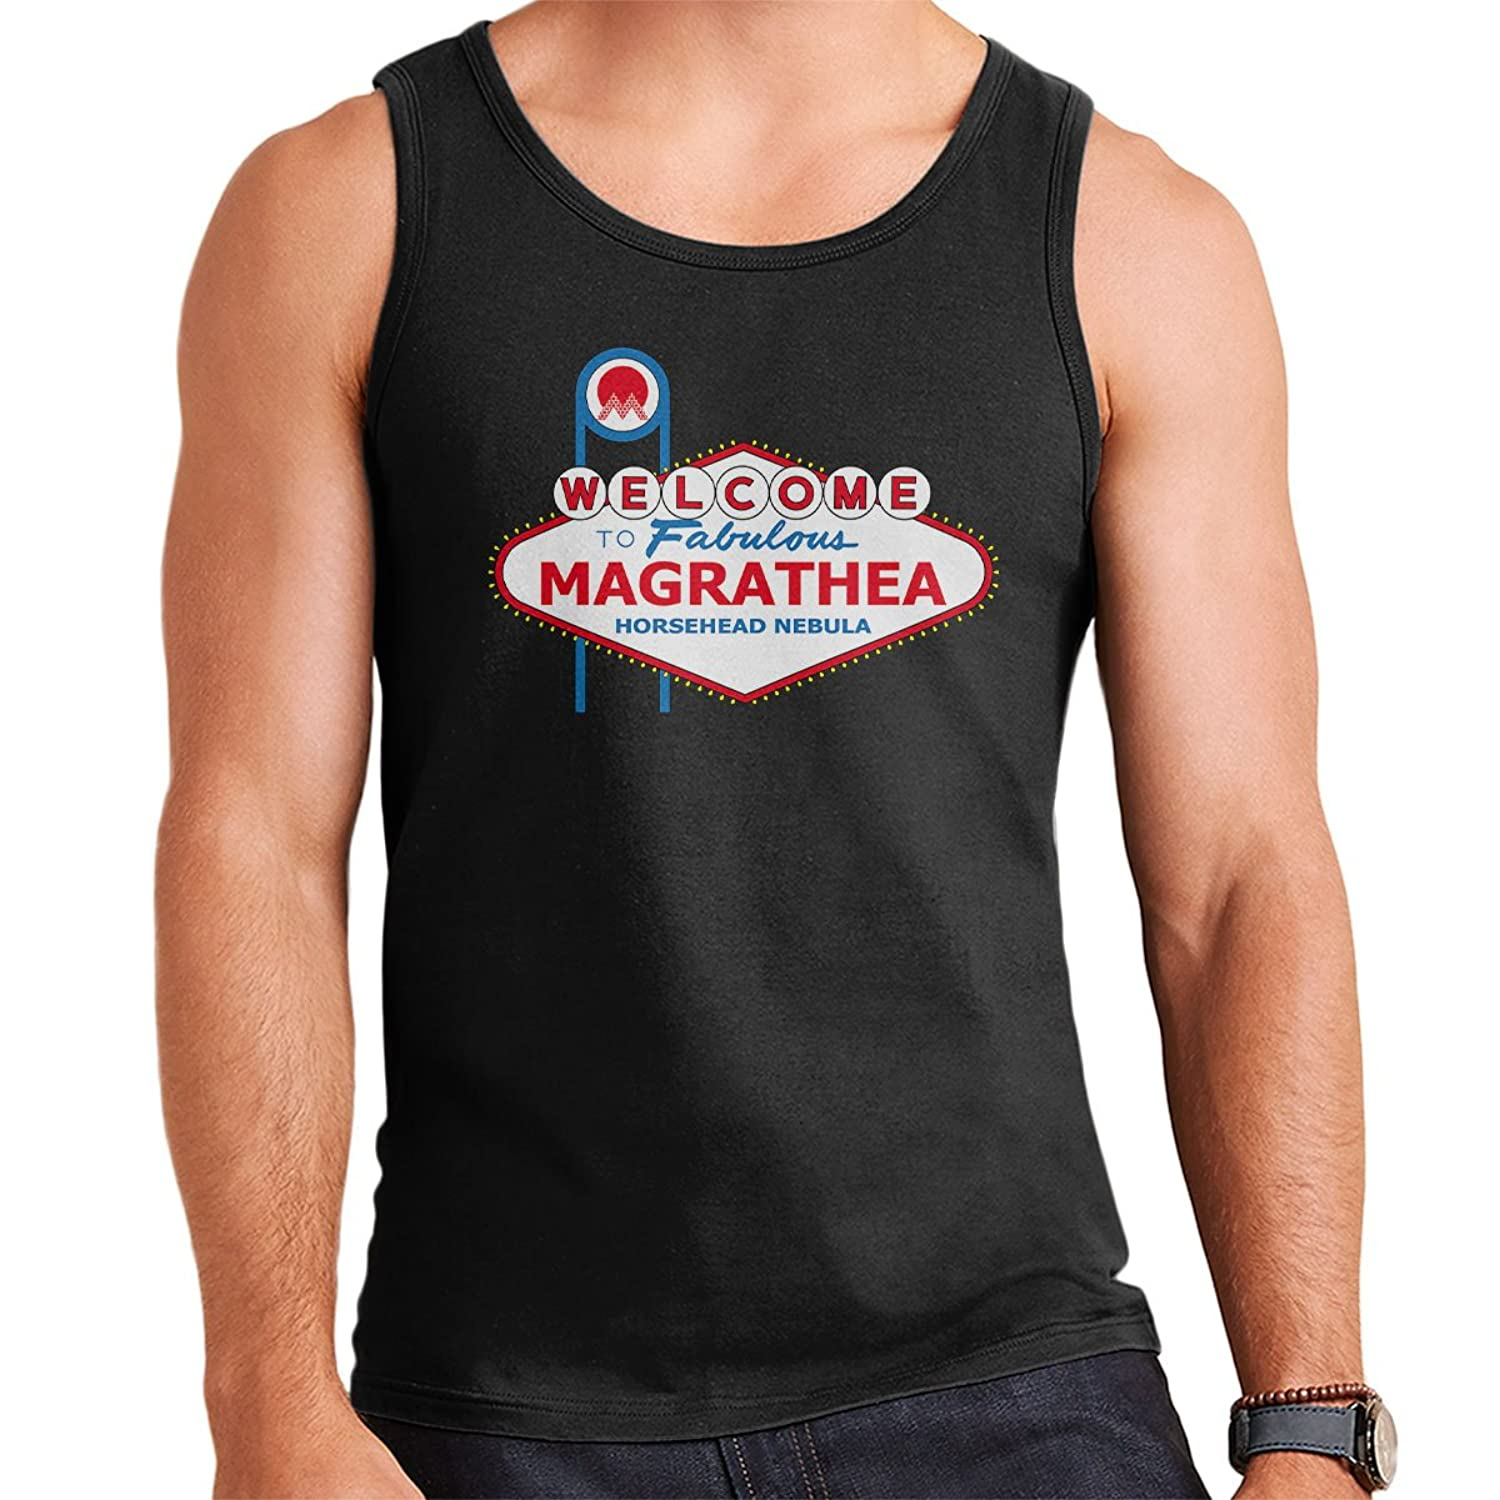 Viva Magrathea Hitchhikers Guide To The Galaxy Men's Vest: Amazon.co.uk:  Clothing